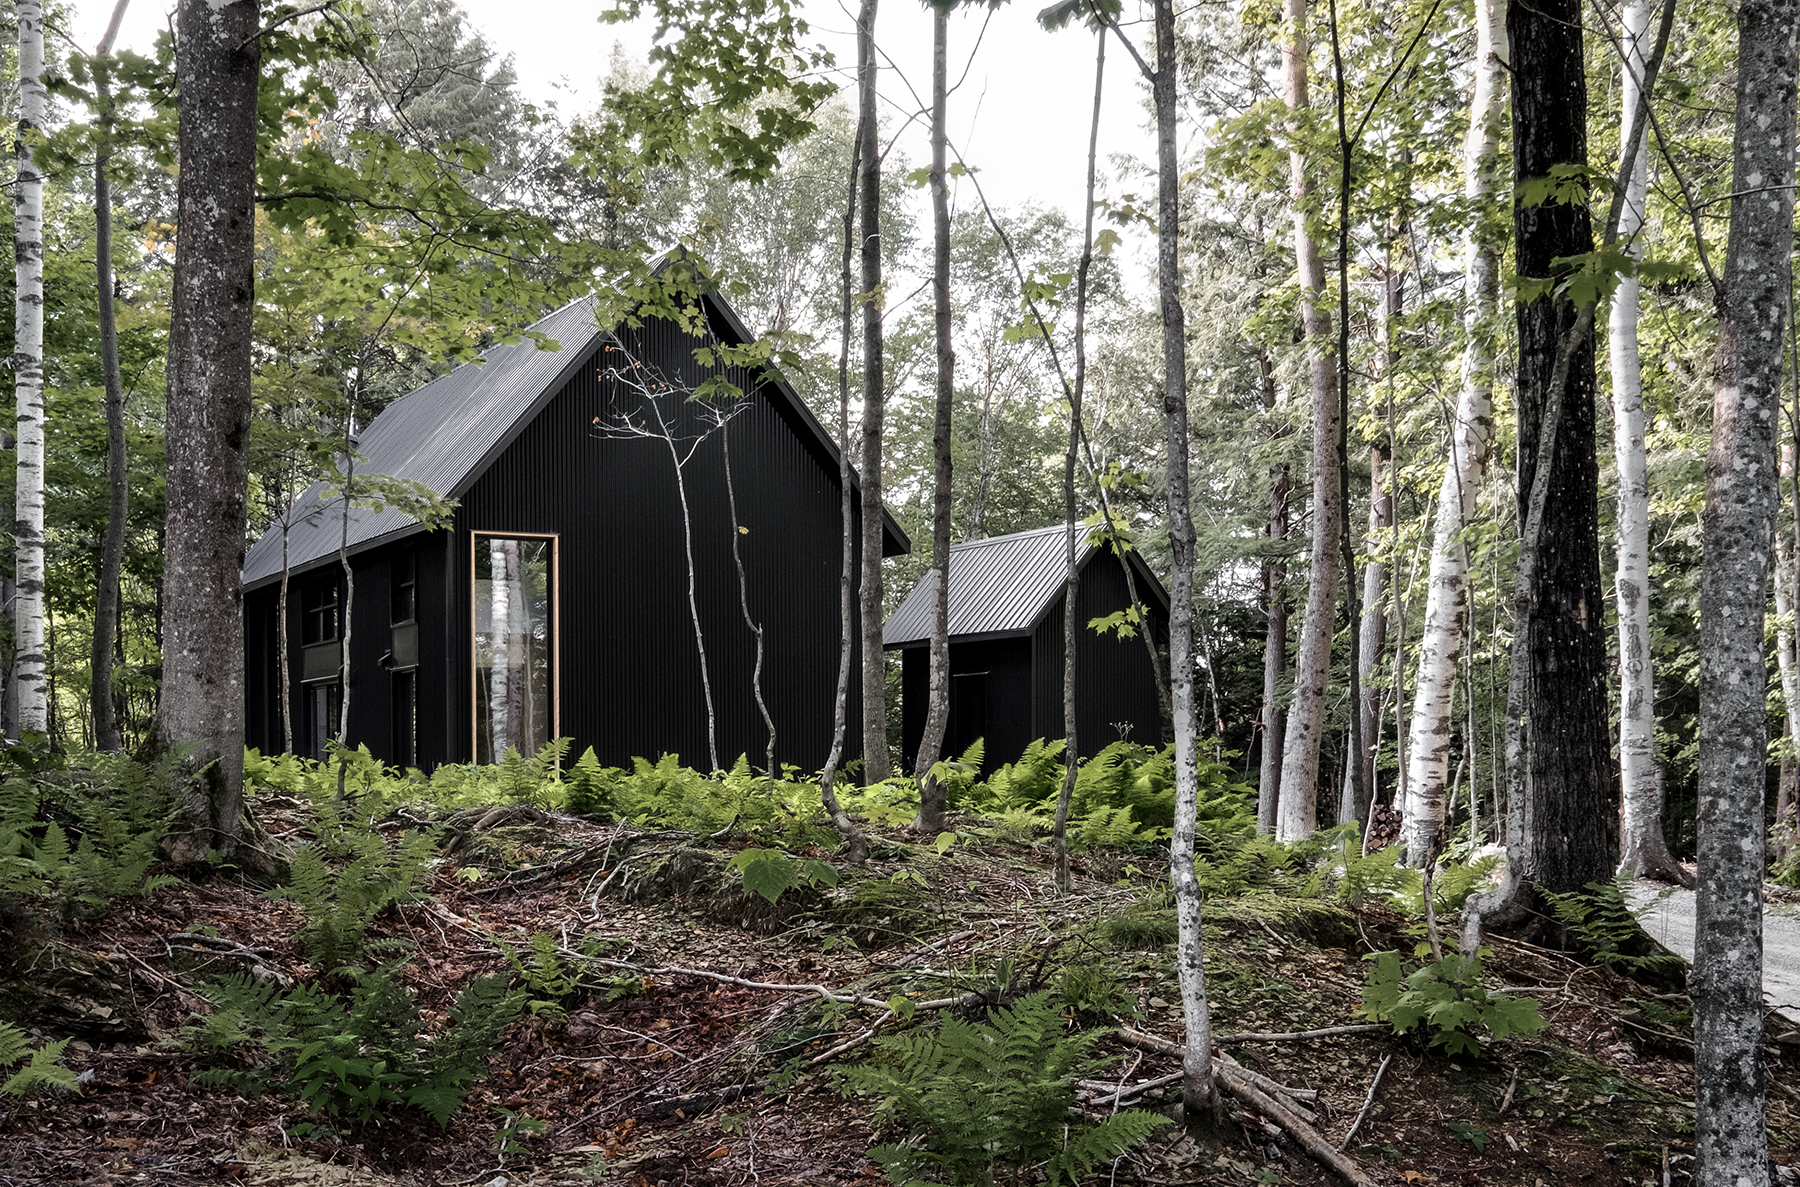 Black cabin in forest